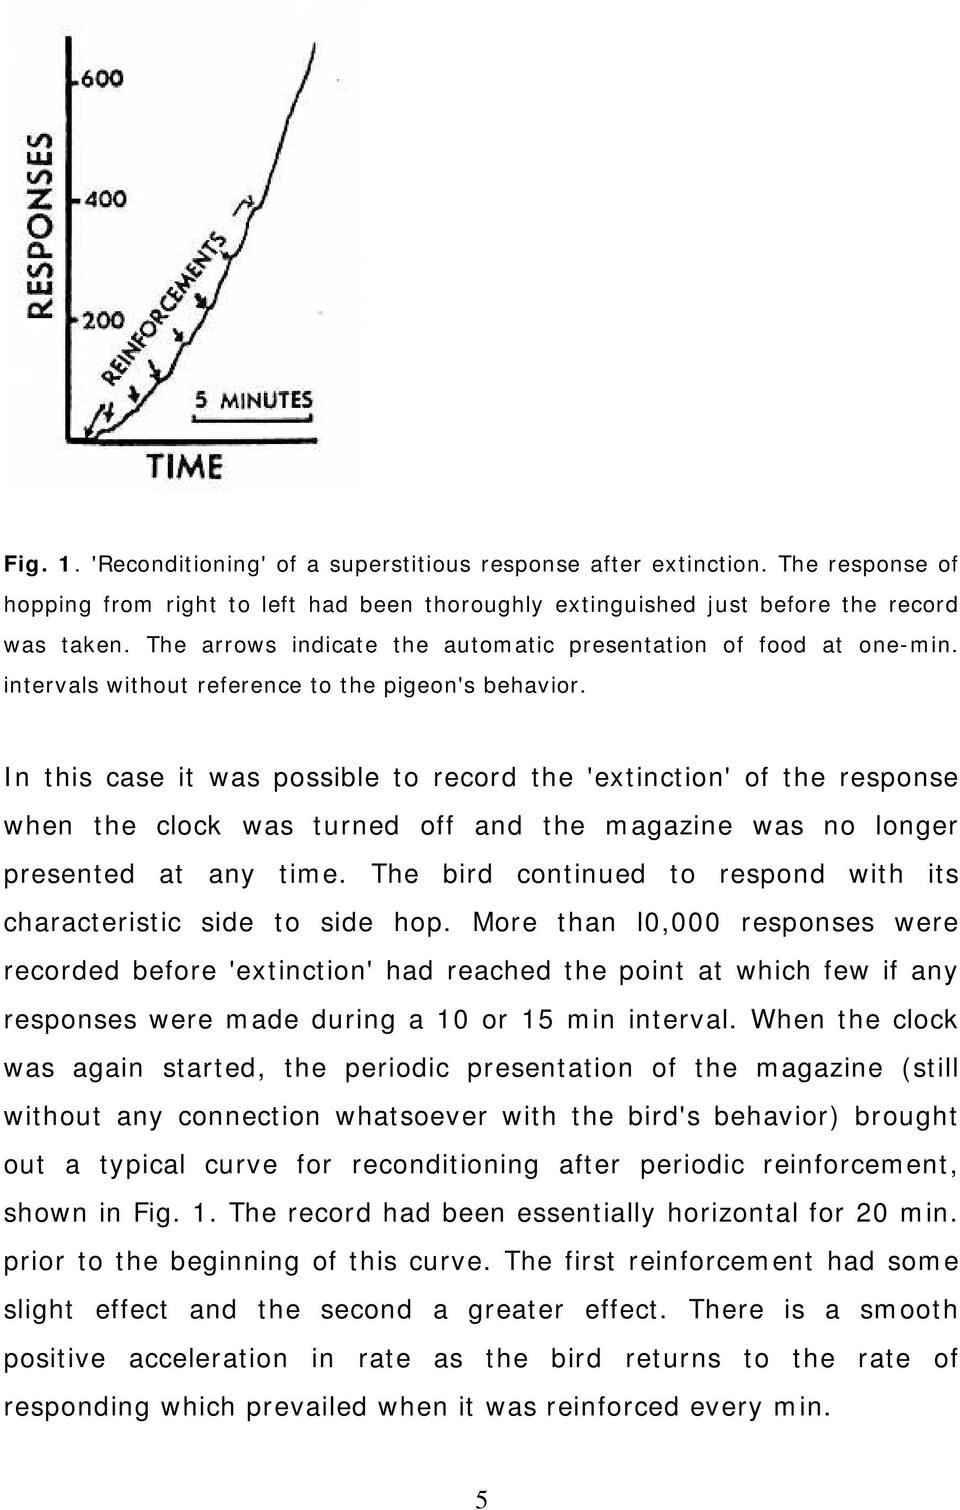 In this case it was possible to record the 'extinction' of the response when the clock was turned off and the magazine was no longer presented at any time.